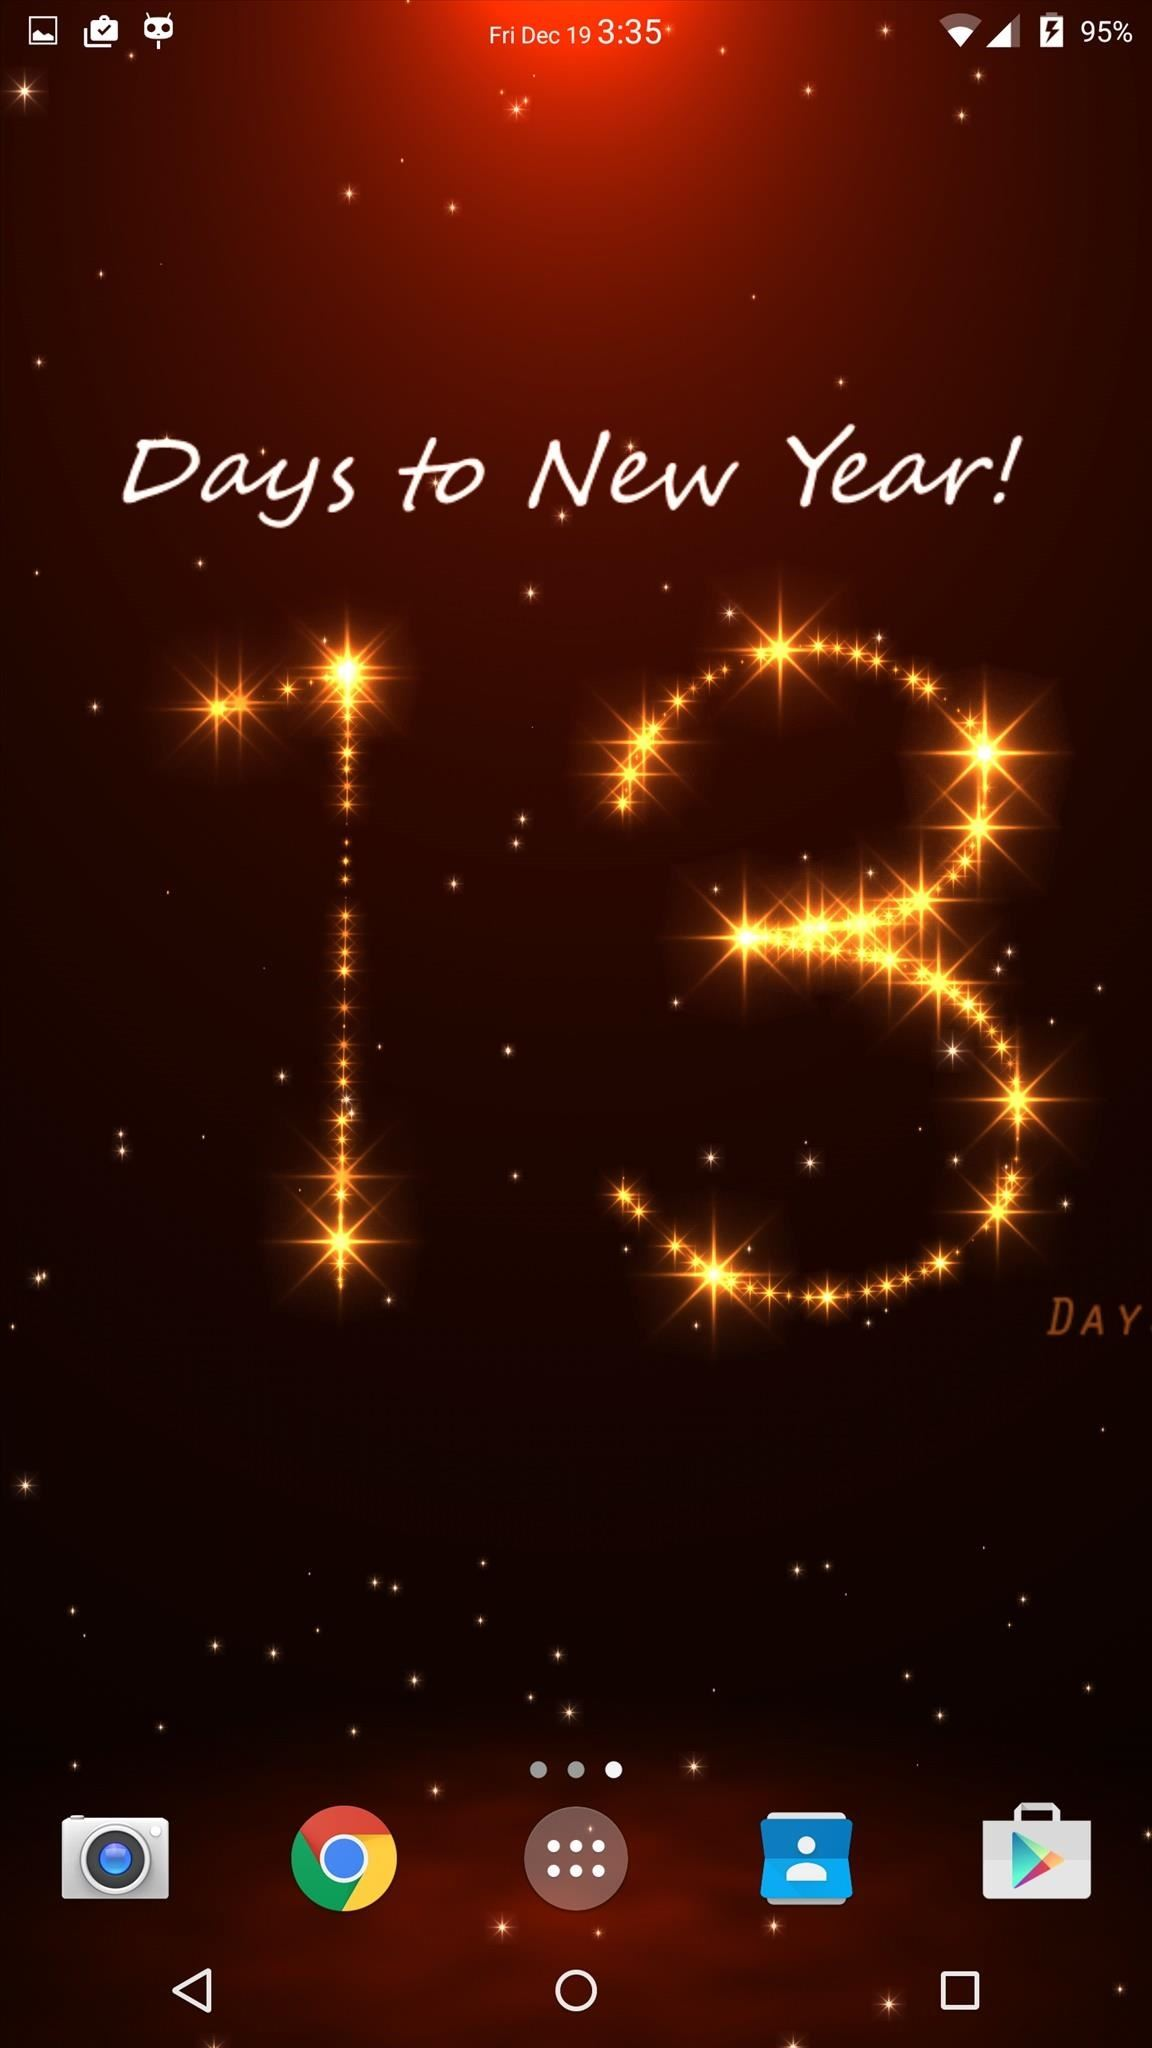 Turn Your Android's Wallpaper into a Christmas & New Year's Countdown Clock